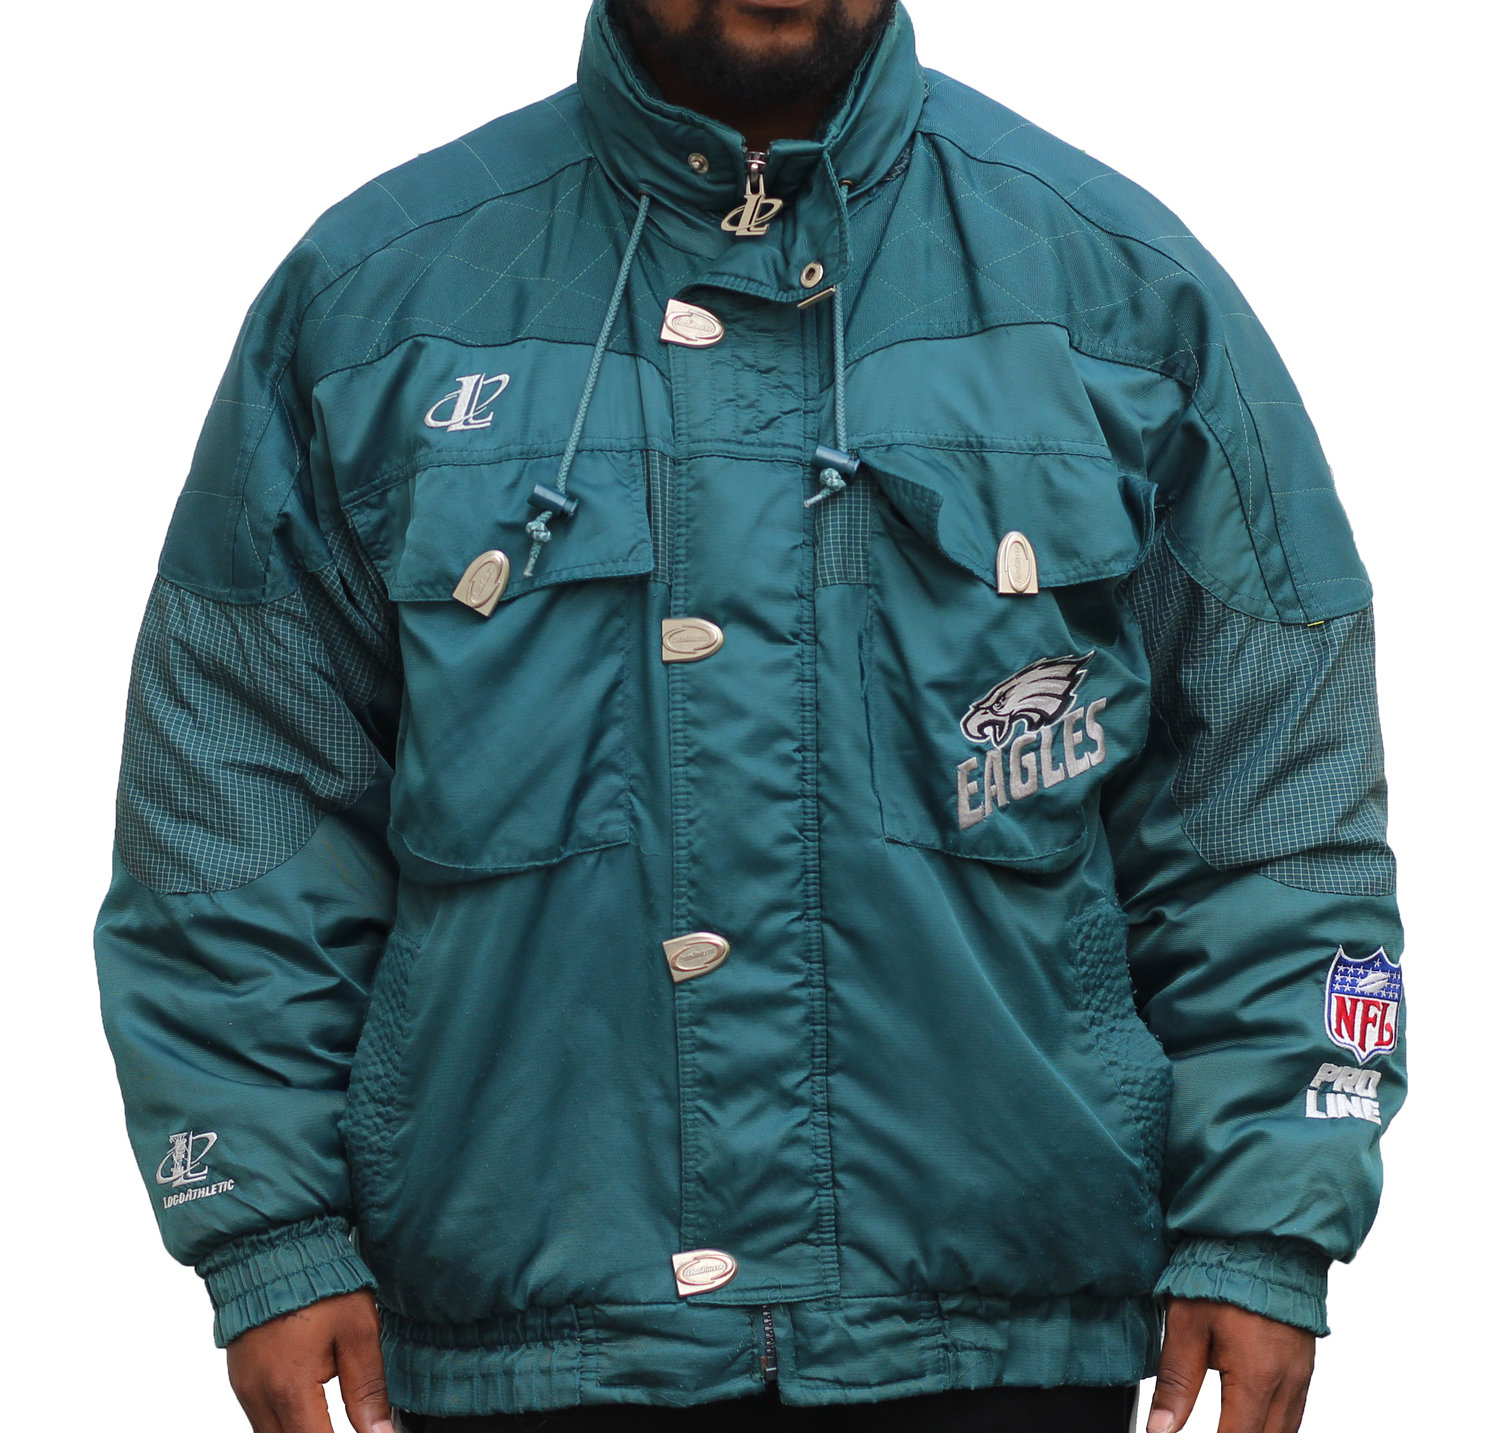 a4a45cff Vintage Logo Athletic Philadelphia Eagles Jacket (Size XL) — Roots